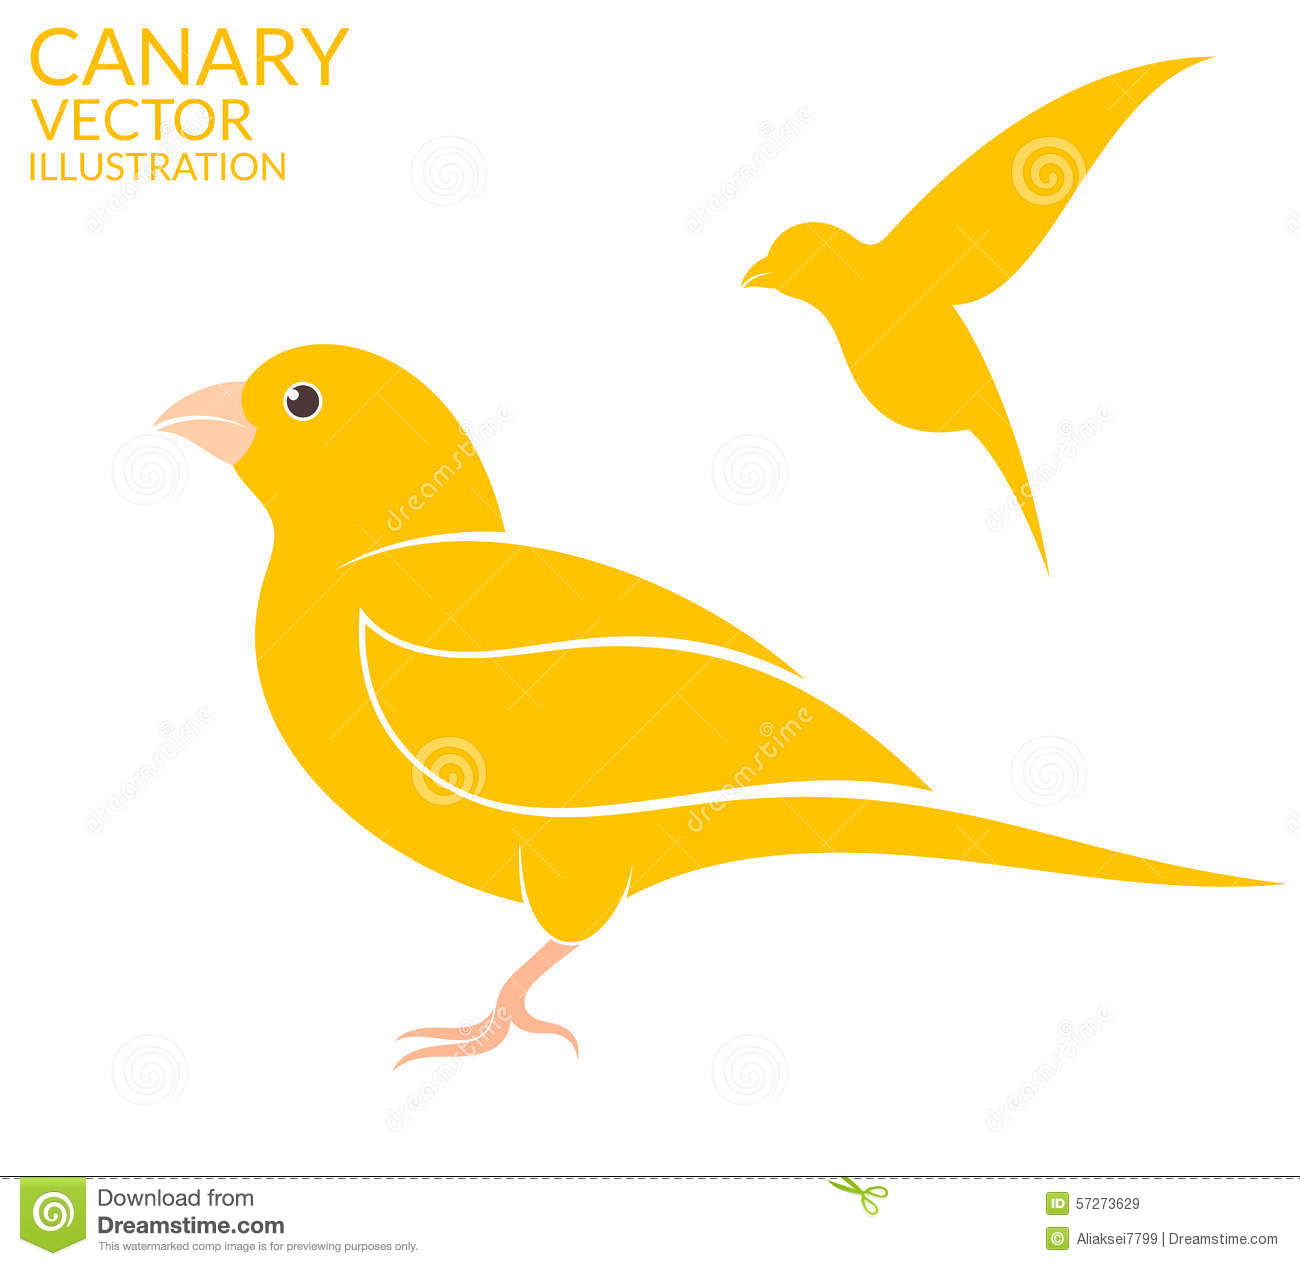 Canary Stock Illustrations.